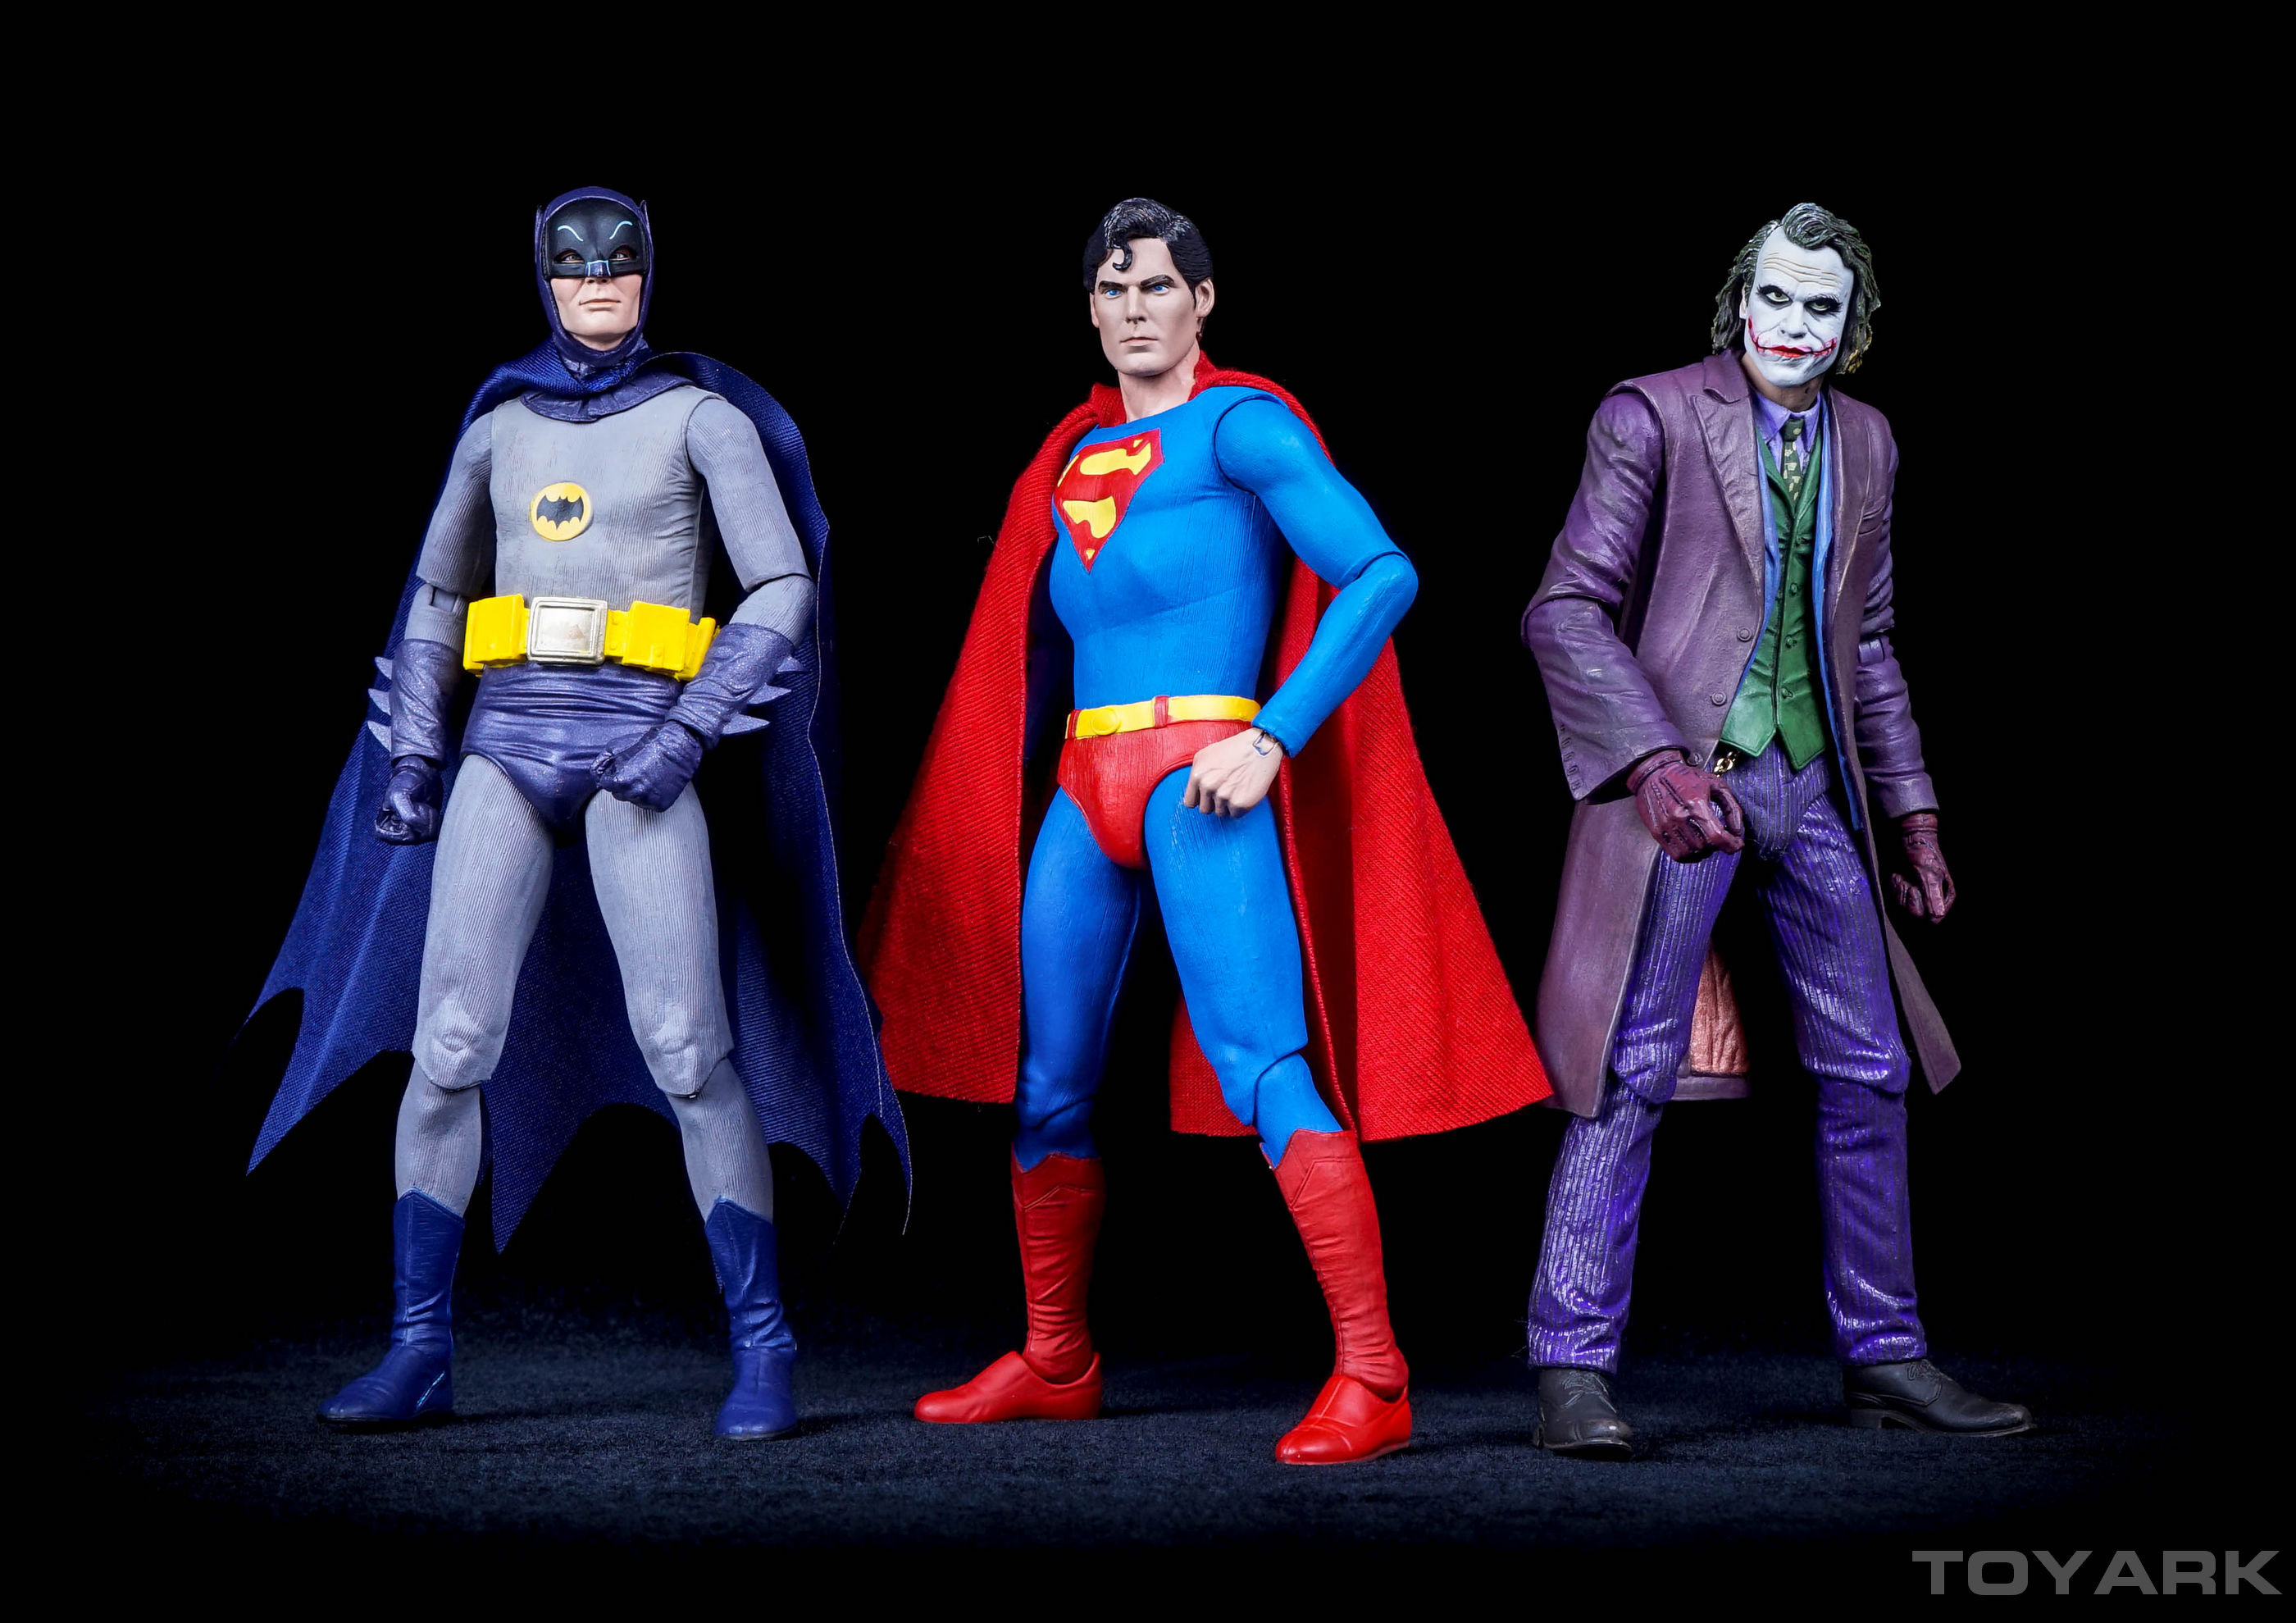 http://news.toyark.com/wp-content/uploads/sites/4/2015/11/NECA-7-Inch-Superman-046.jpg